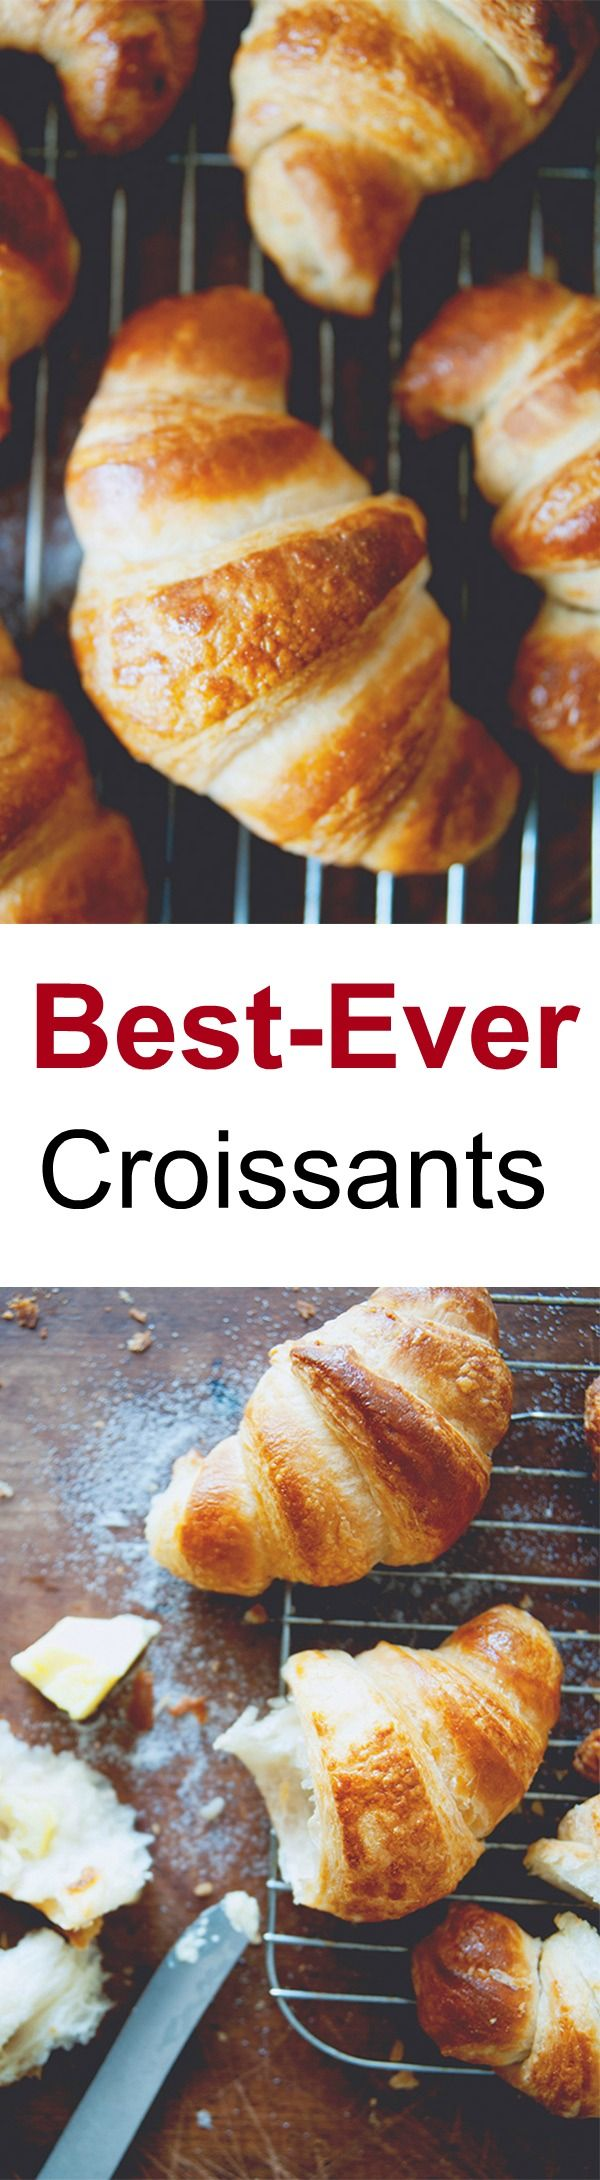 Croissants – Homemade croissants with this easy and fail-proof recipe from @Claire Thomas | rasamalaysia.com